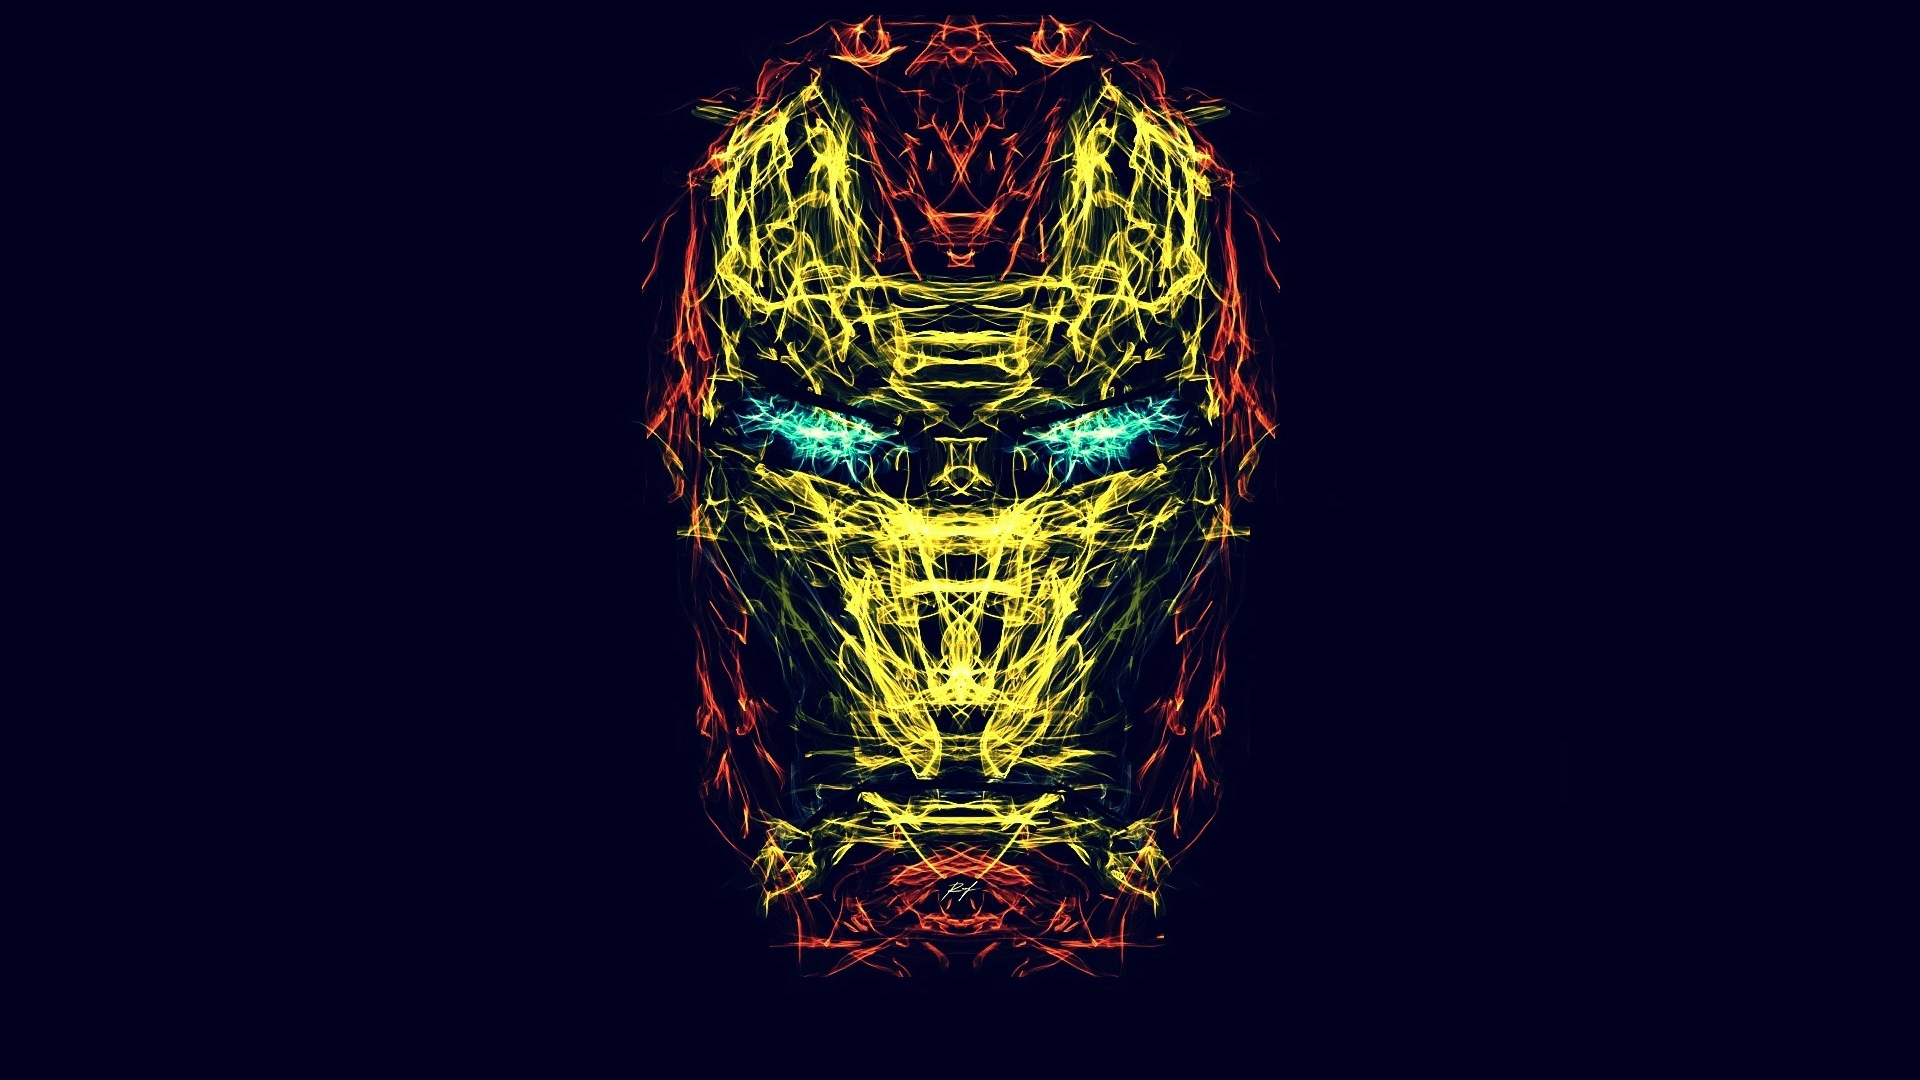 1920x1080 Iron Man Creative Abstract Art 1080p Laptop Full Hd